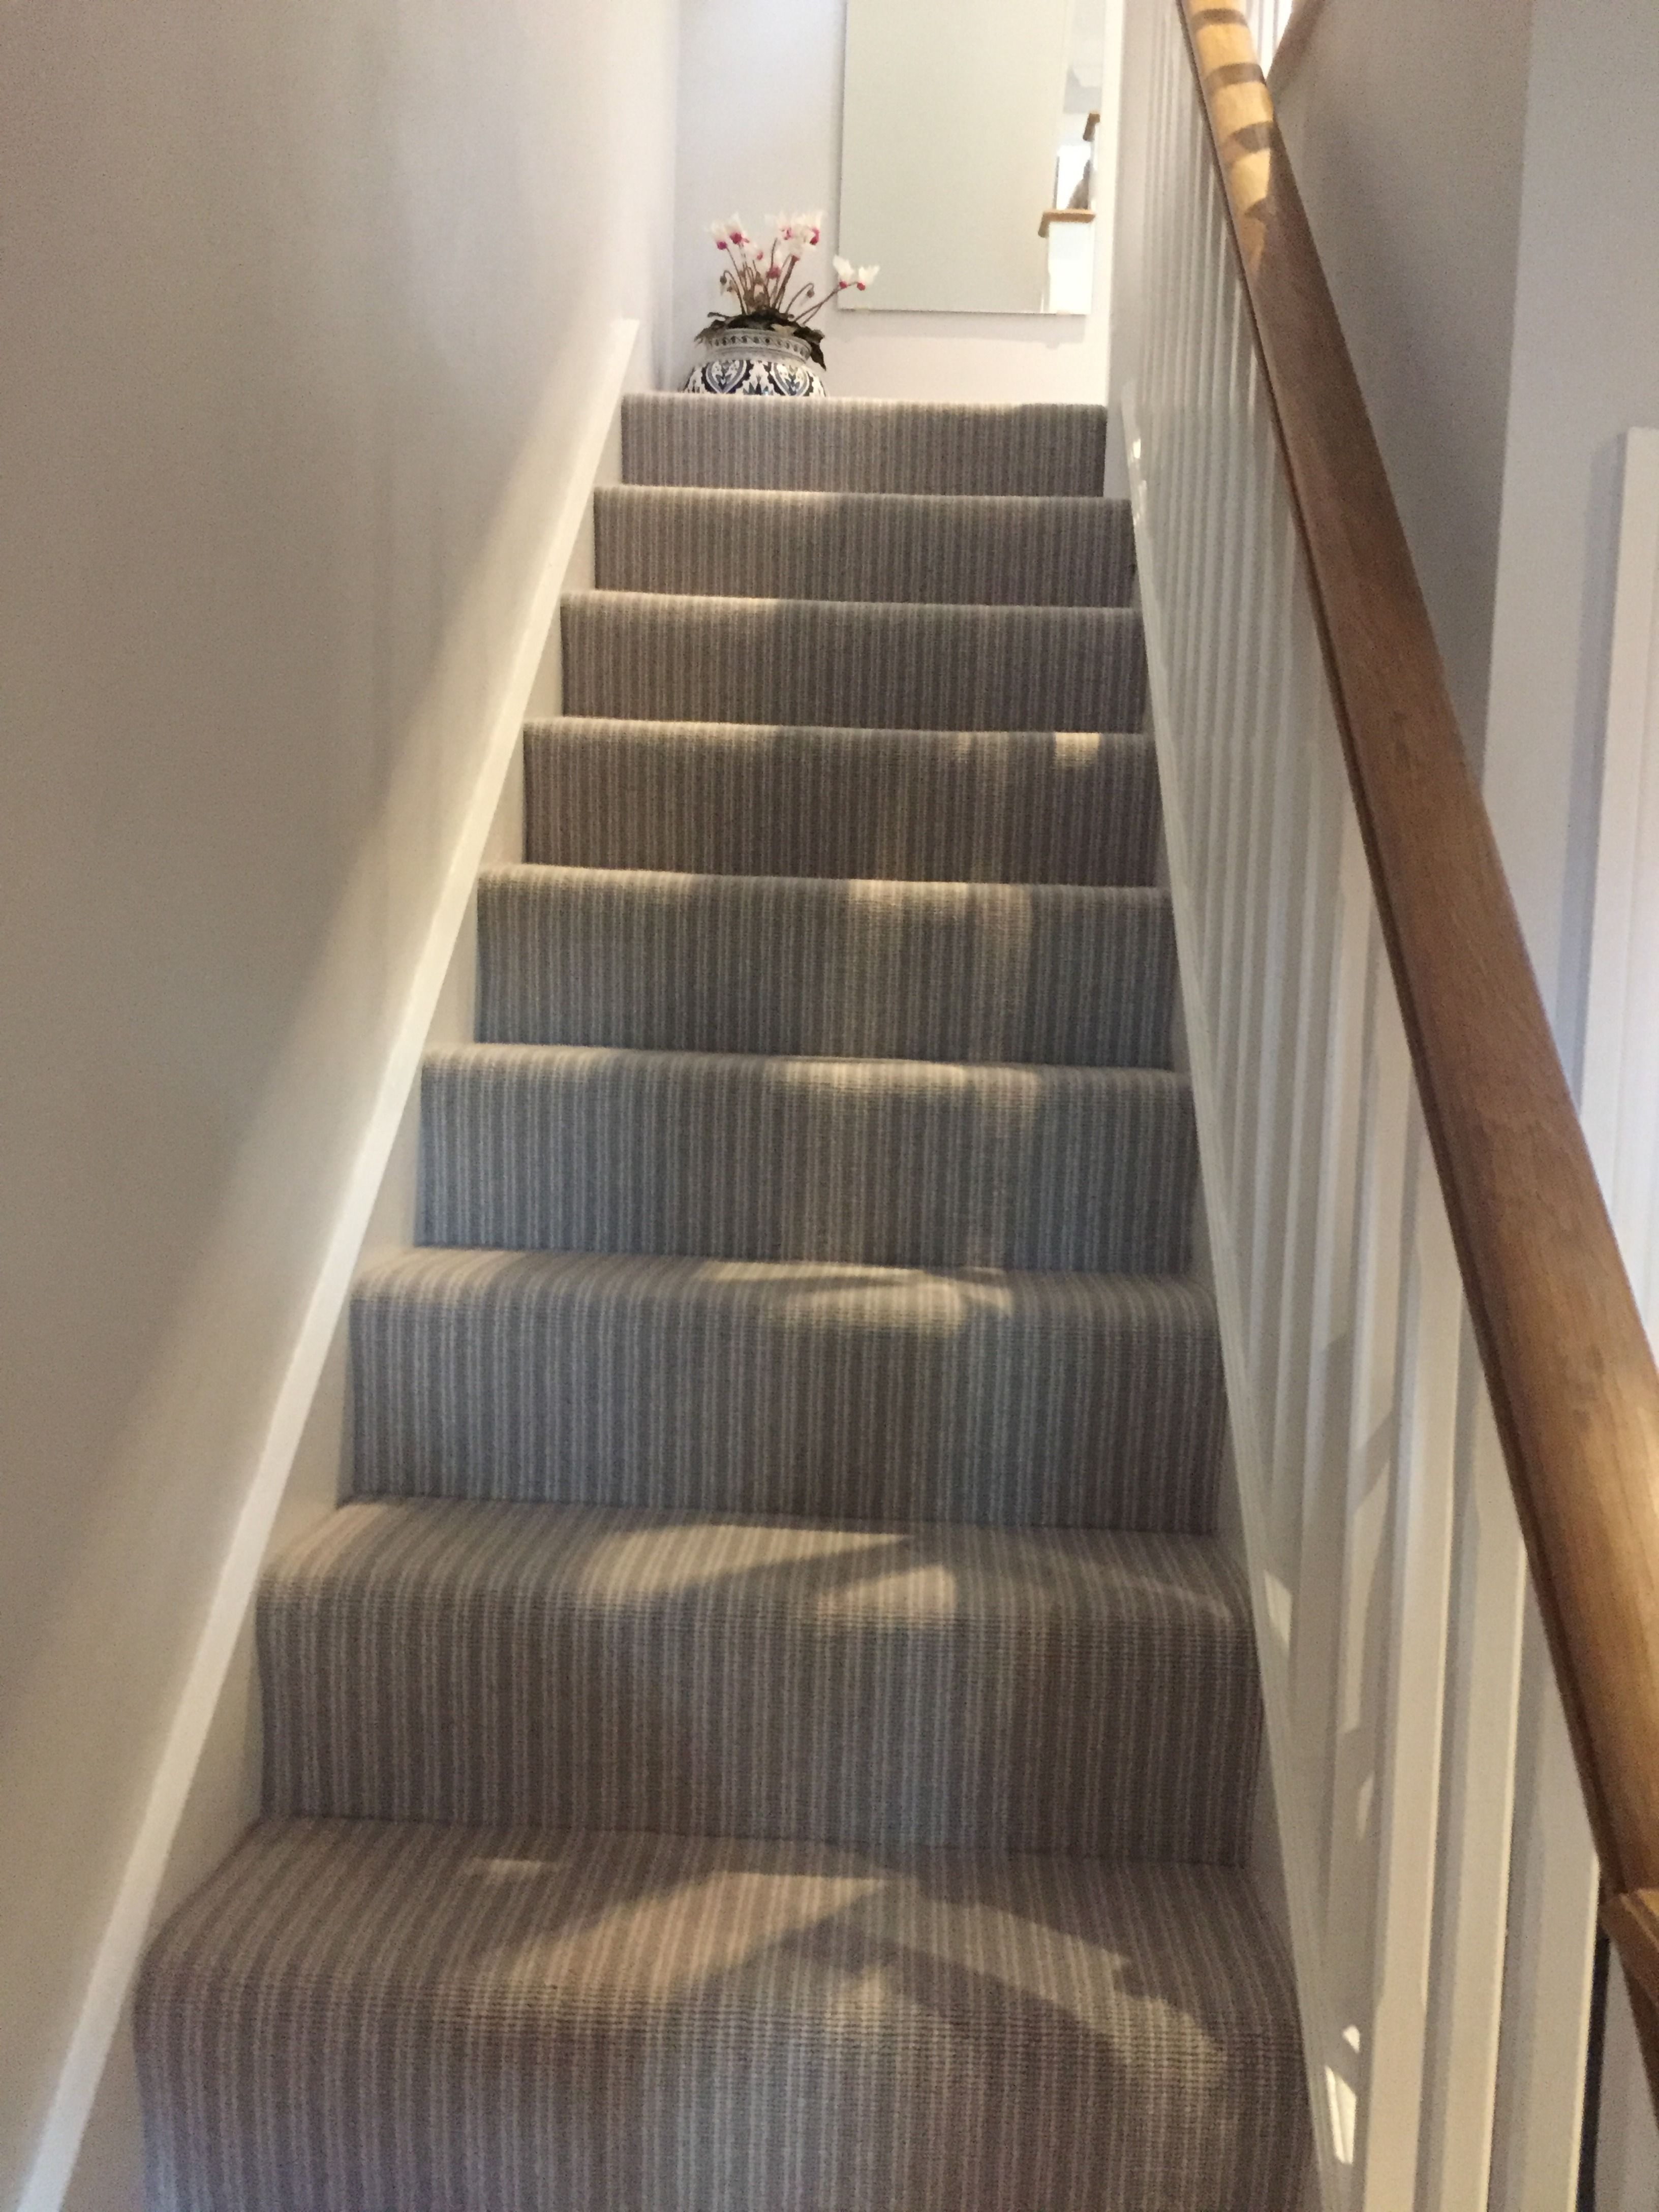 Best Installation By Lino Len Striped Carpet Draws The Eye To 400 x 300